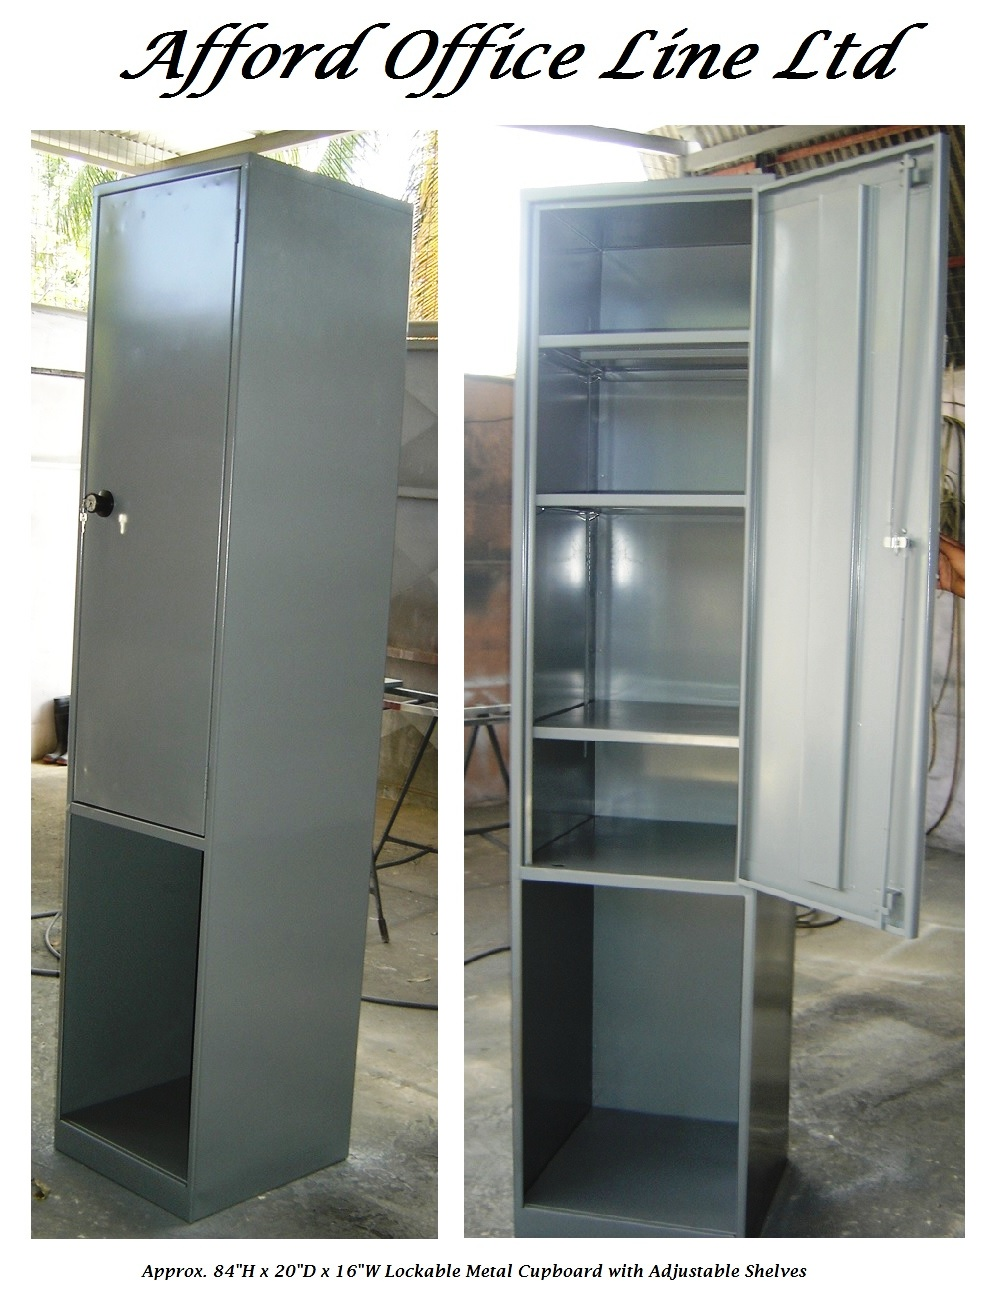 Office Lockable Cabinets Afford Office Line Limited Lockers Cupboards Shelvings